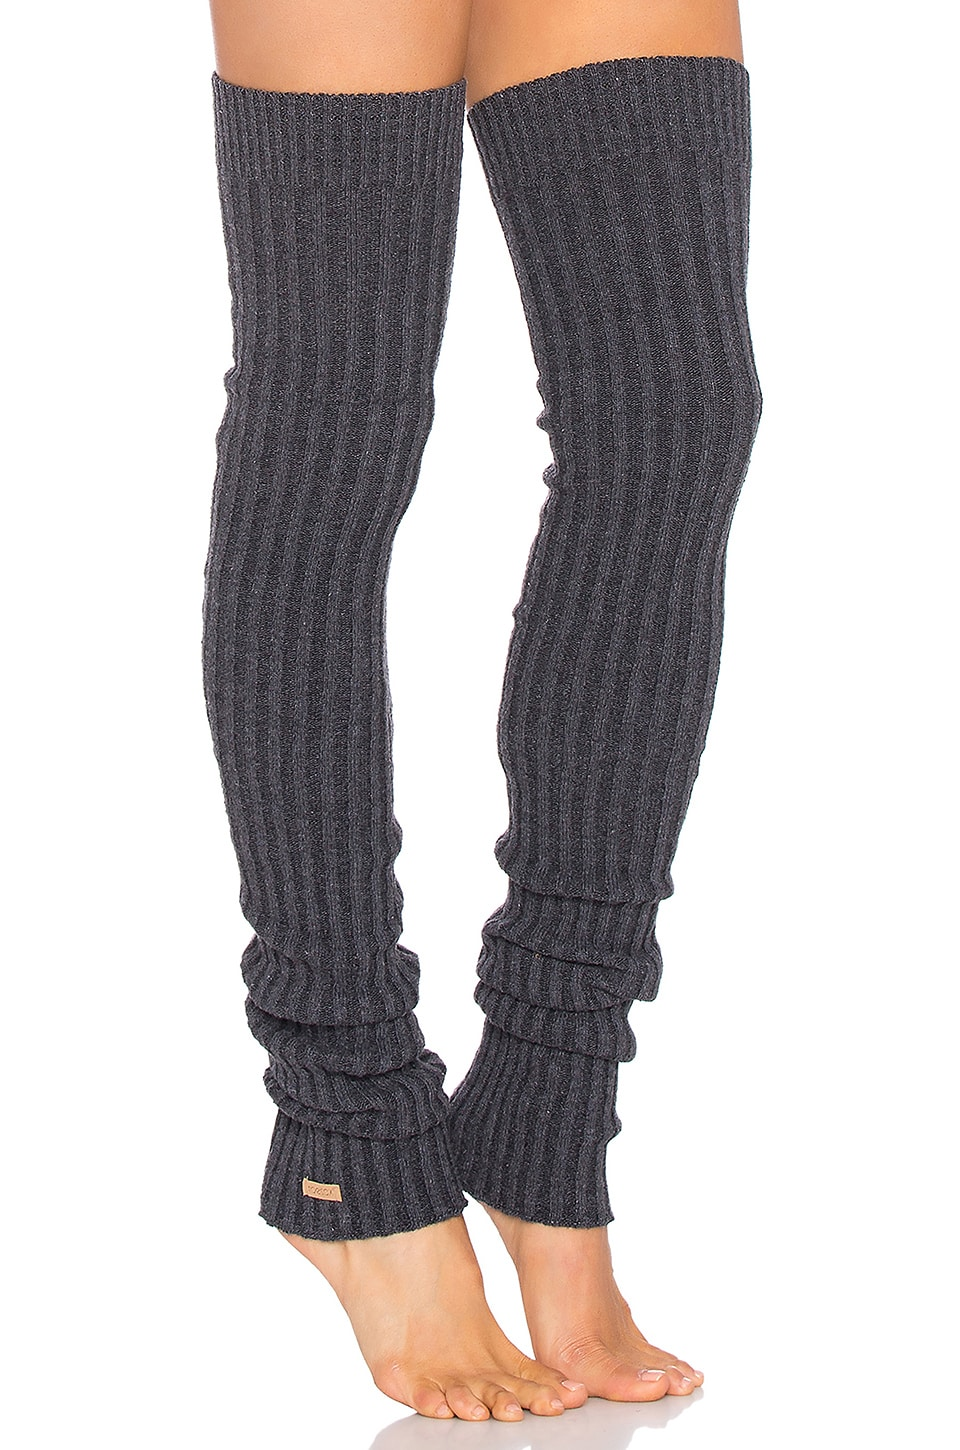 Thigh High Leg Warmer